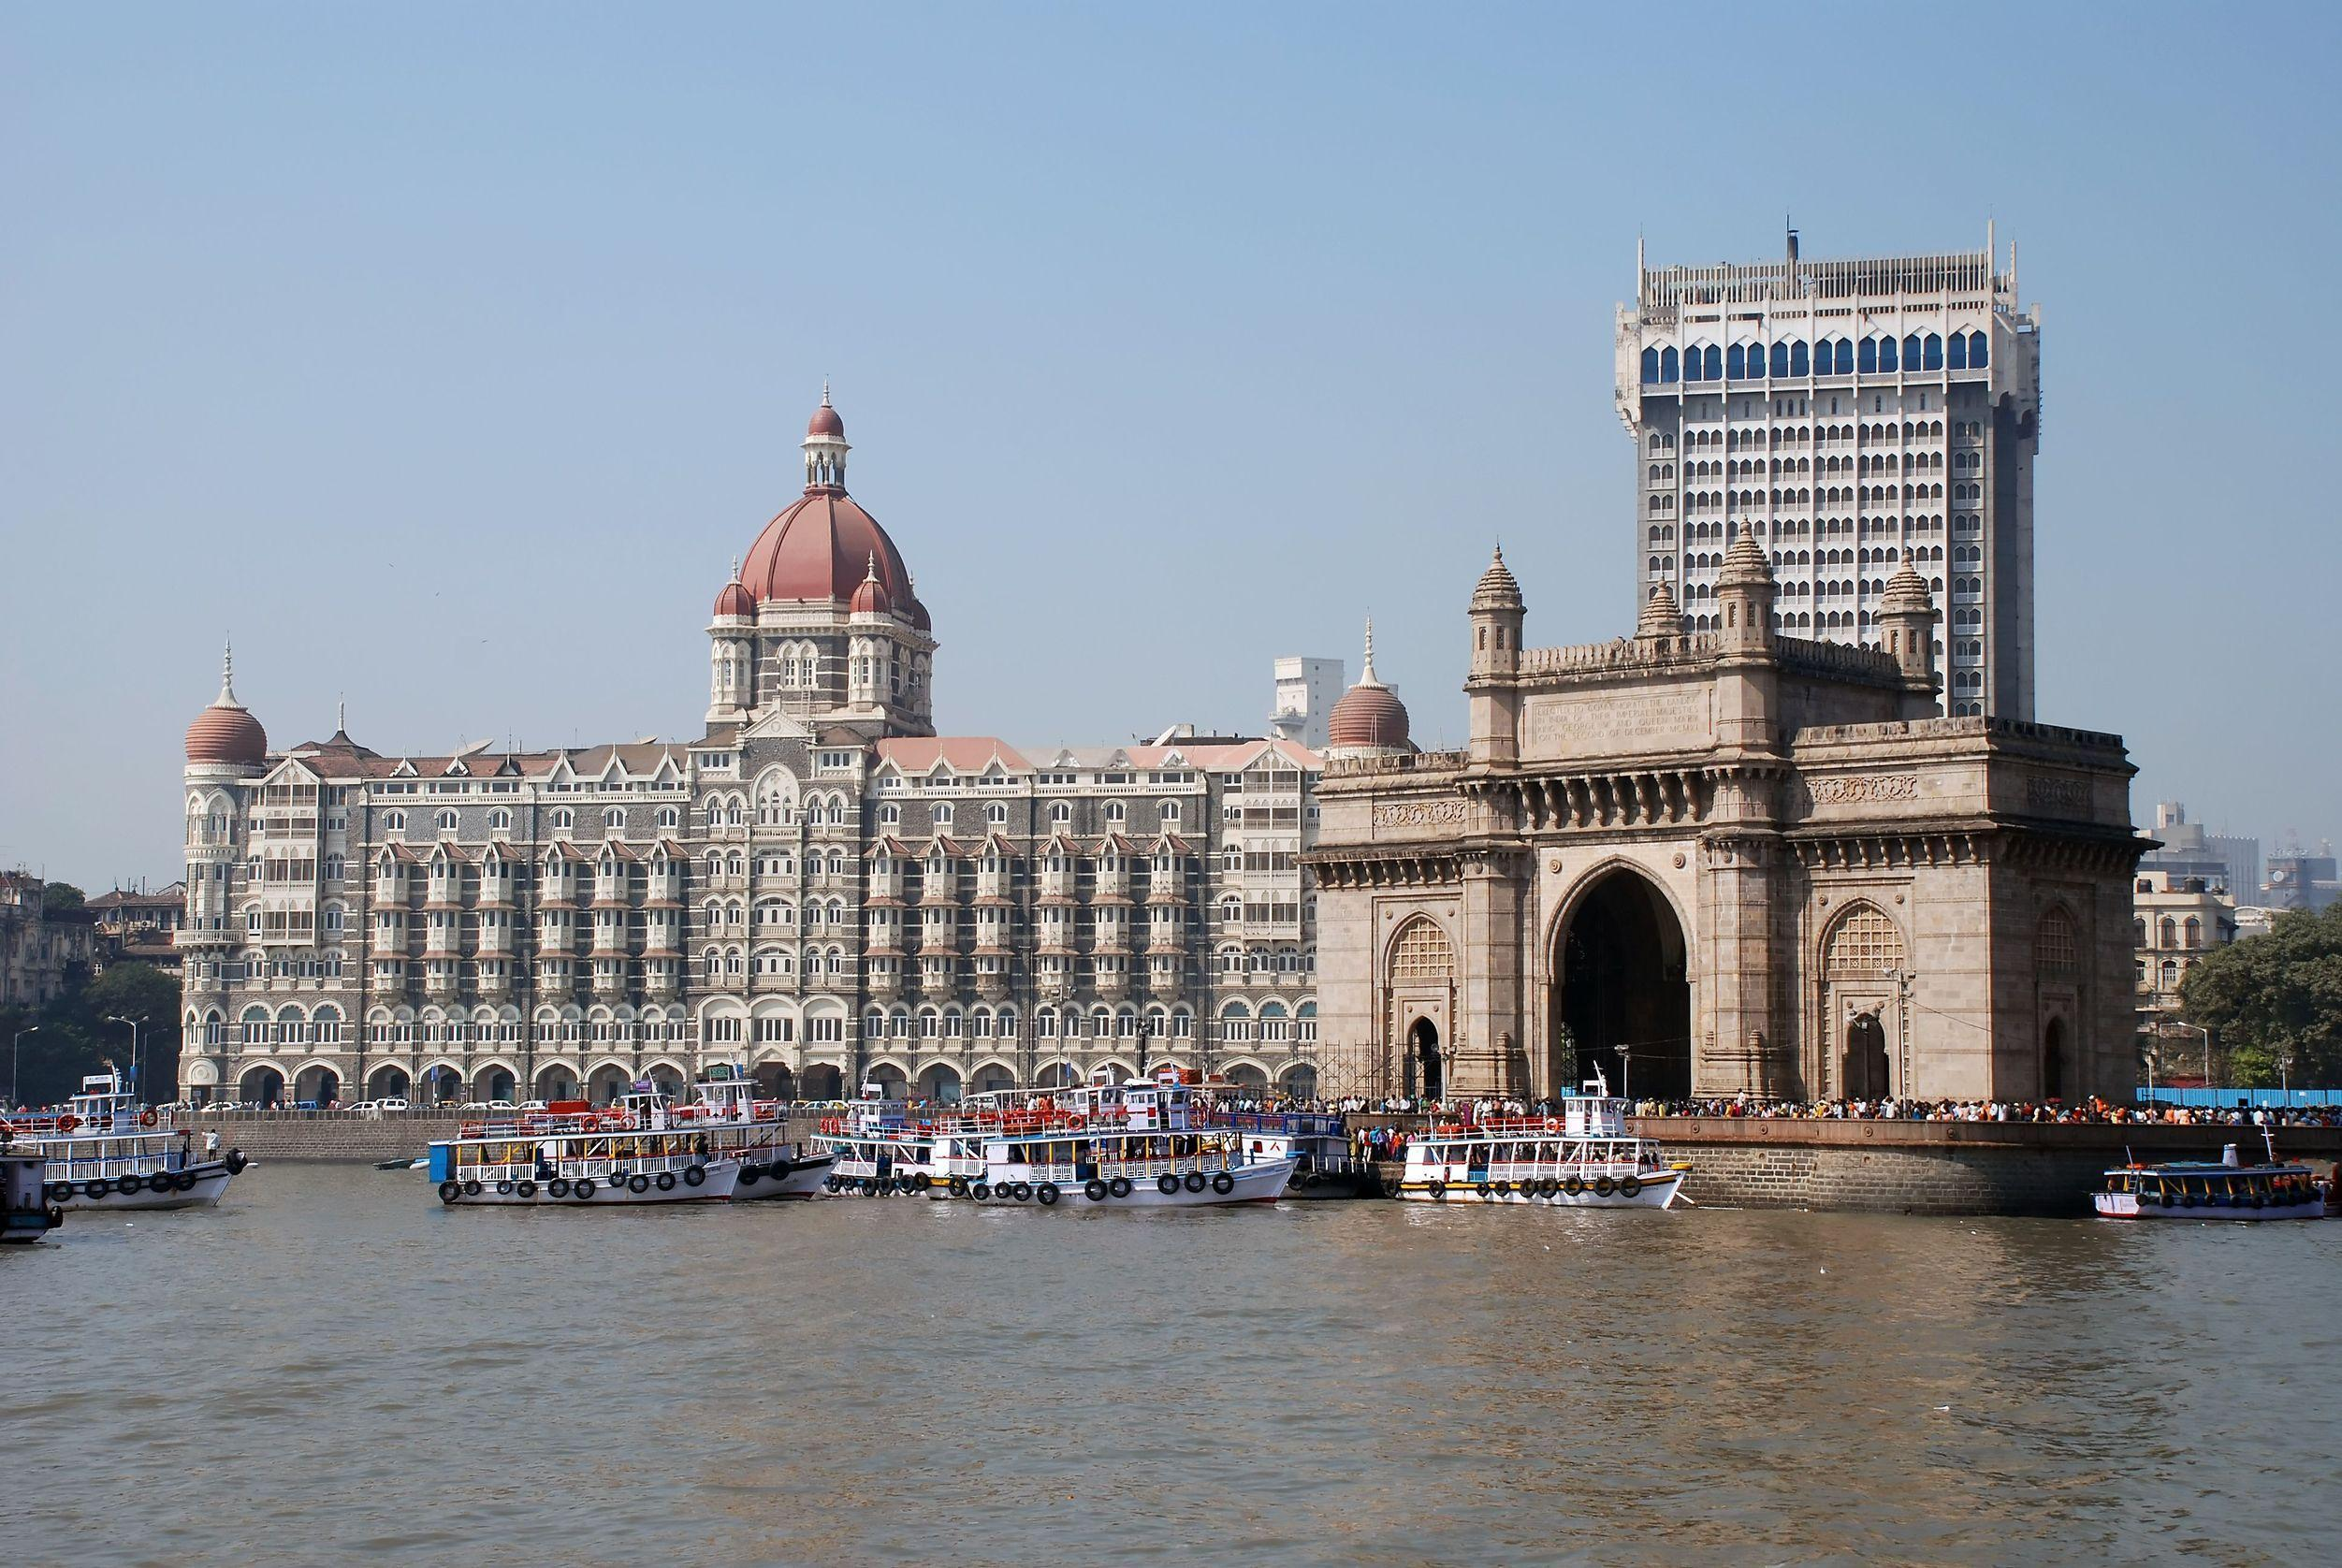 Yachts in Mumbai wallpapers and image